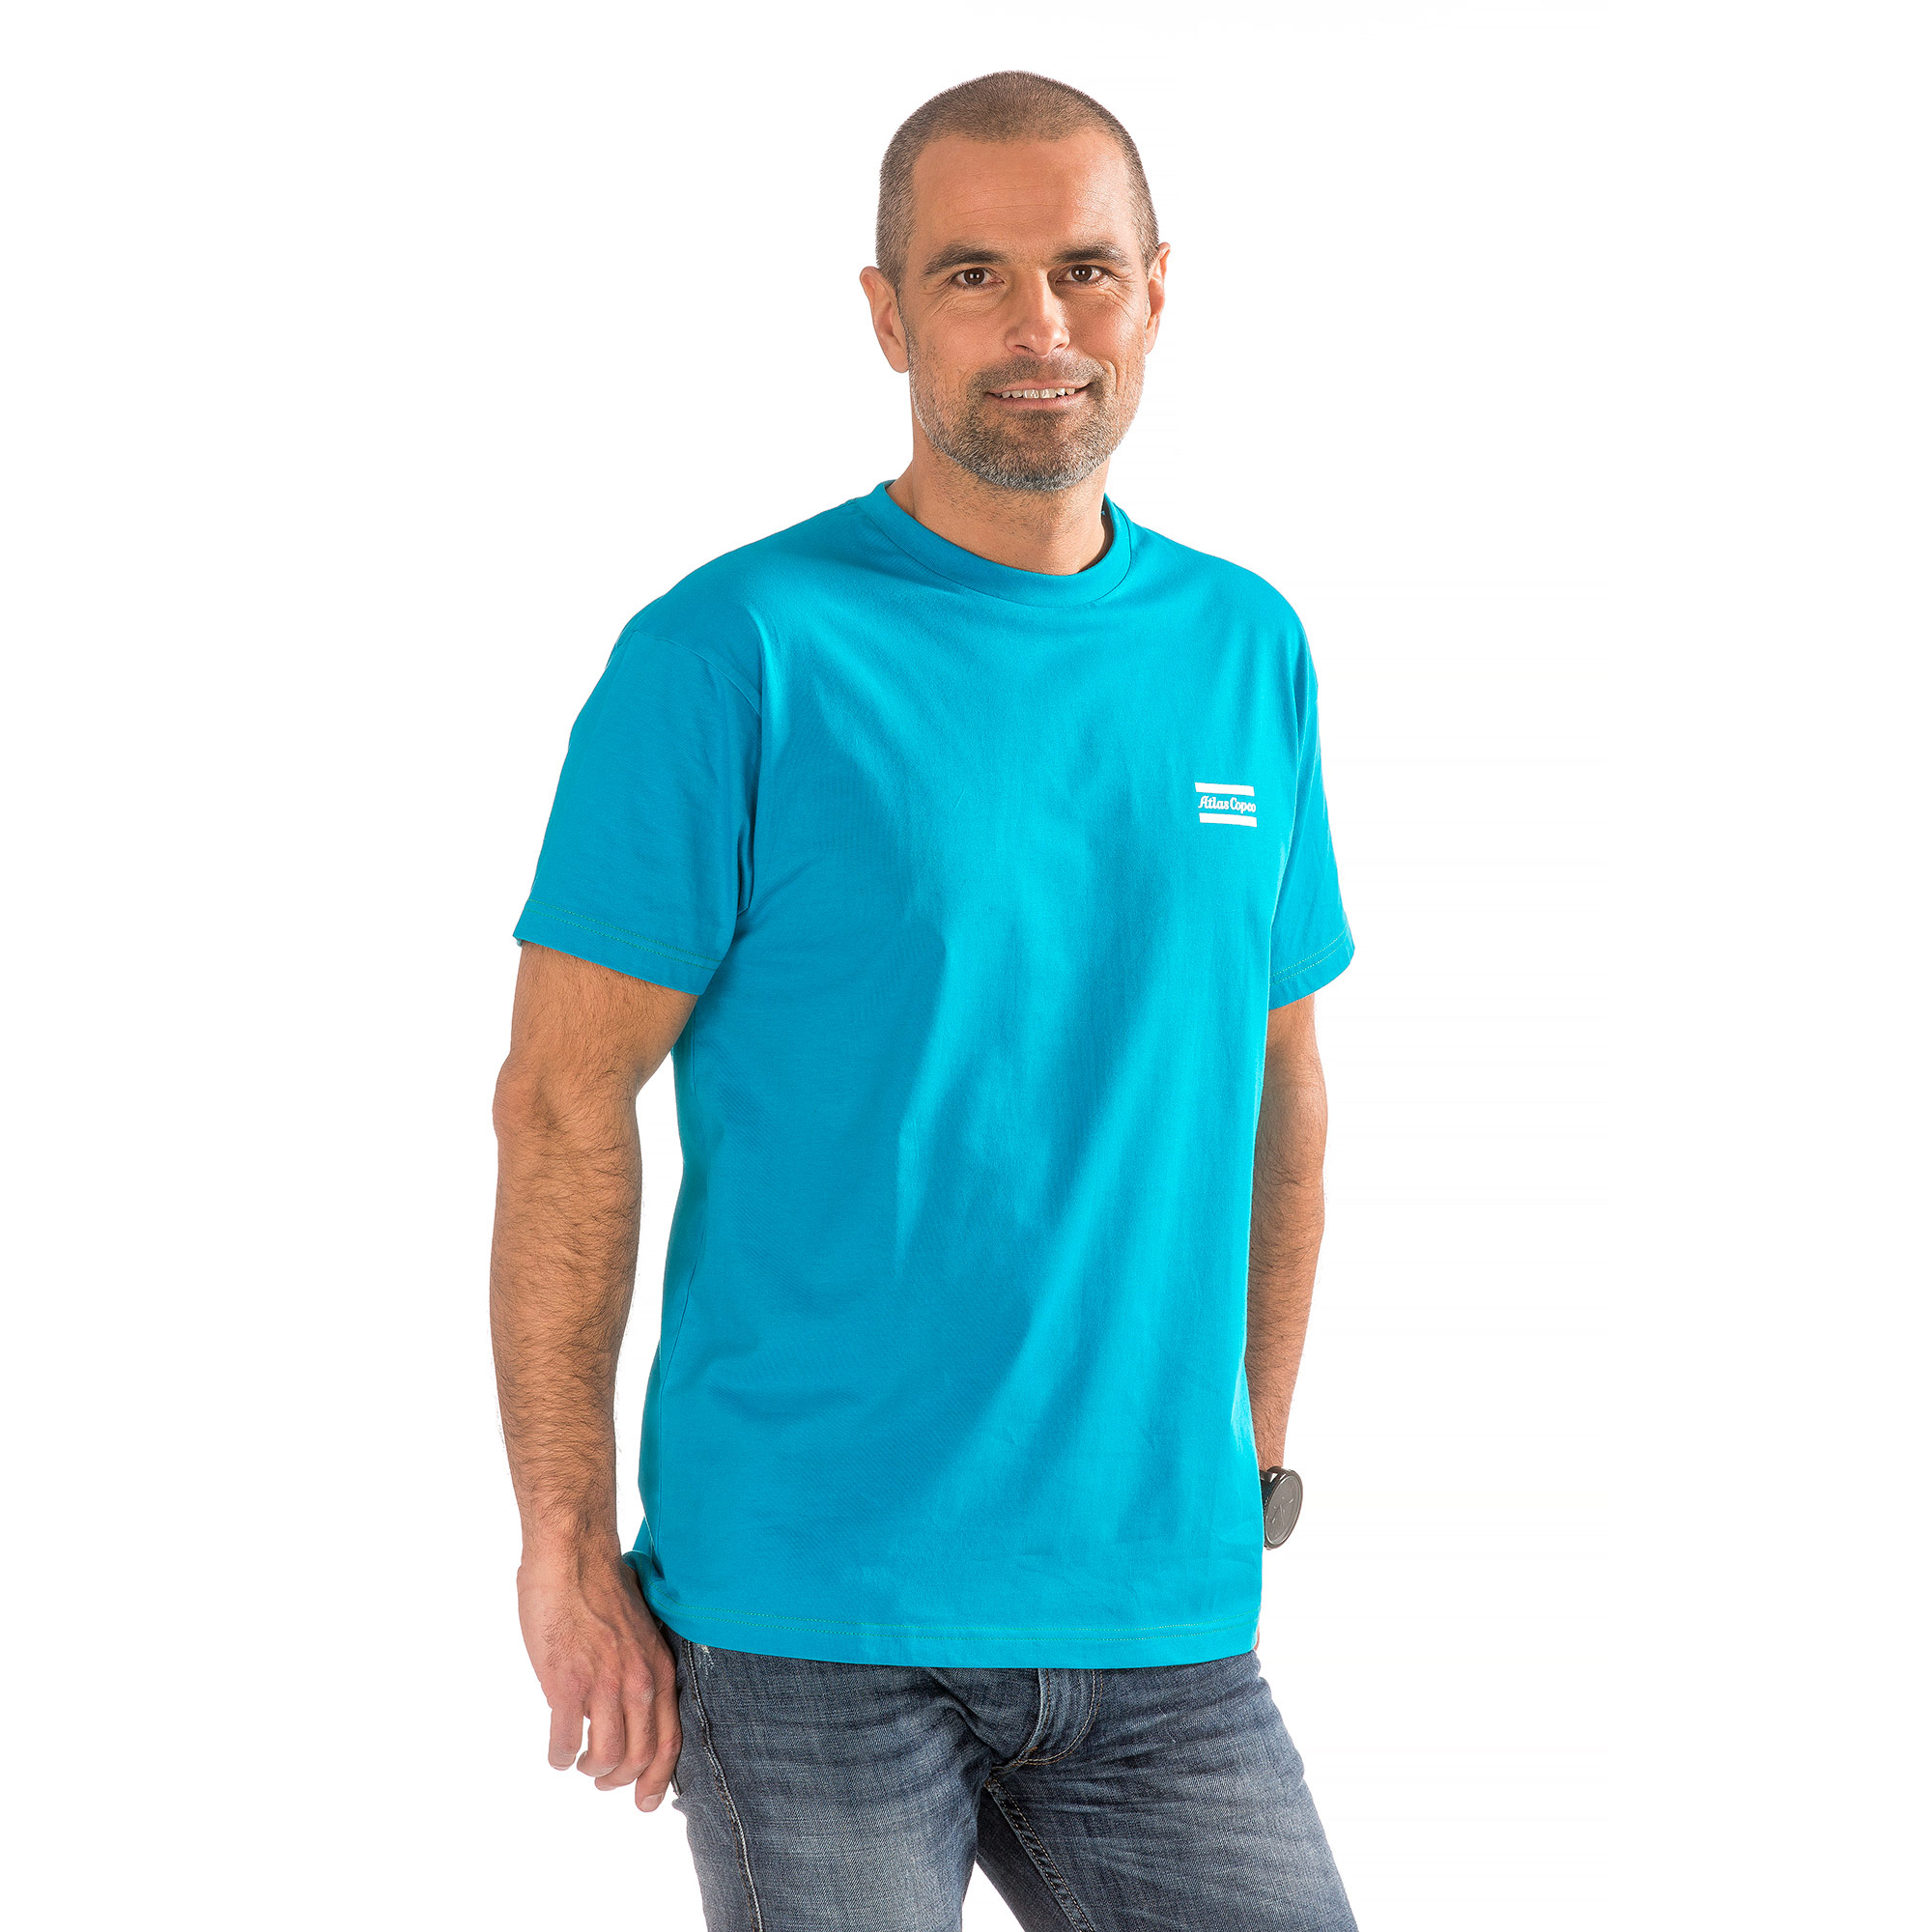 A 100% organic cotton t-shirt in Atlas Copco blue.